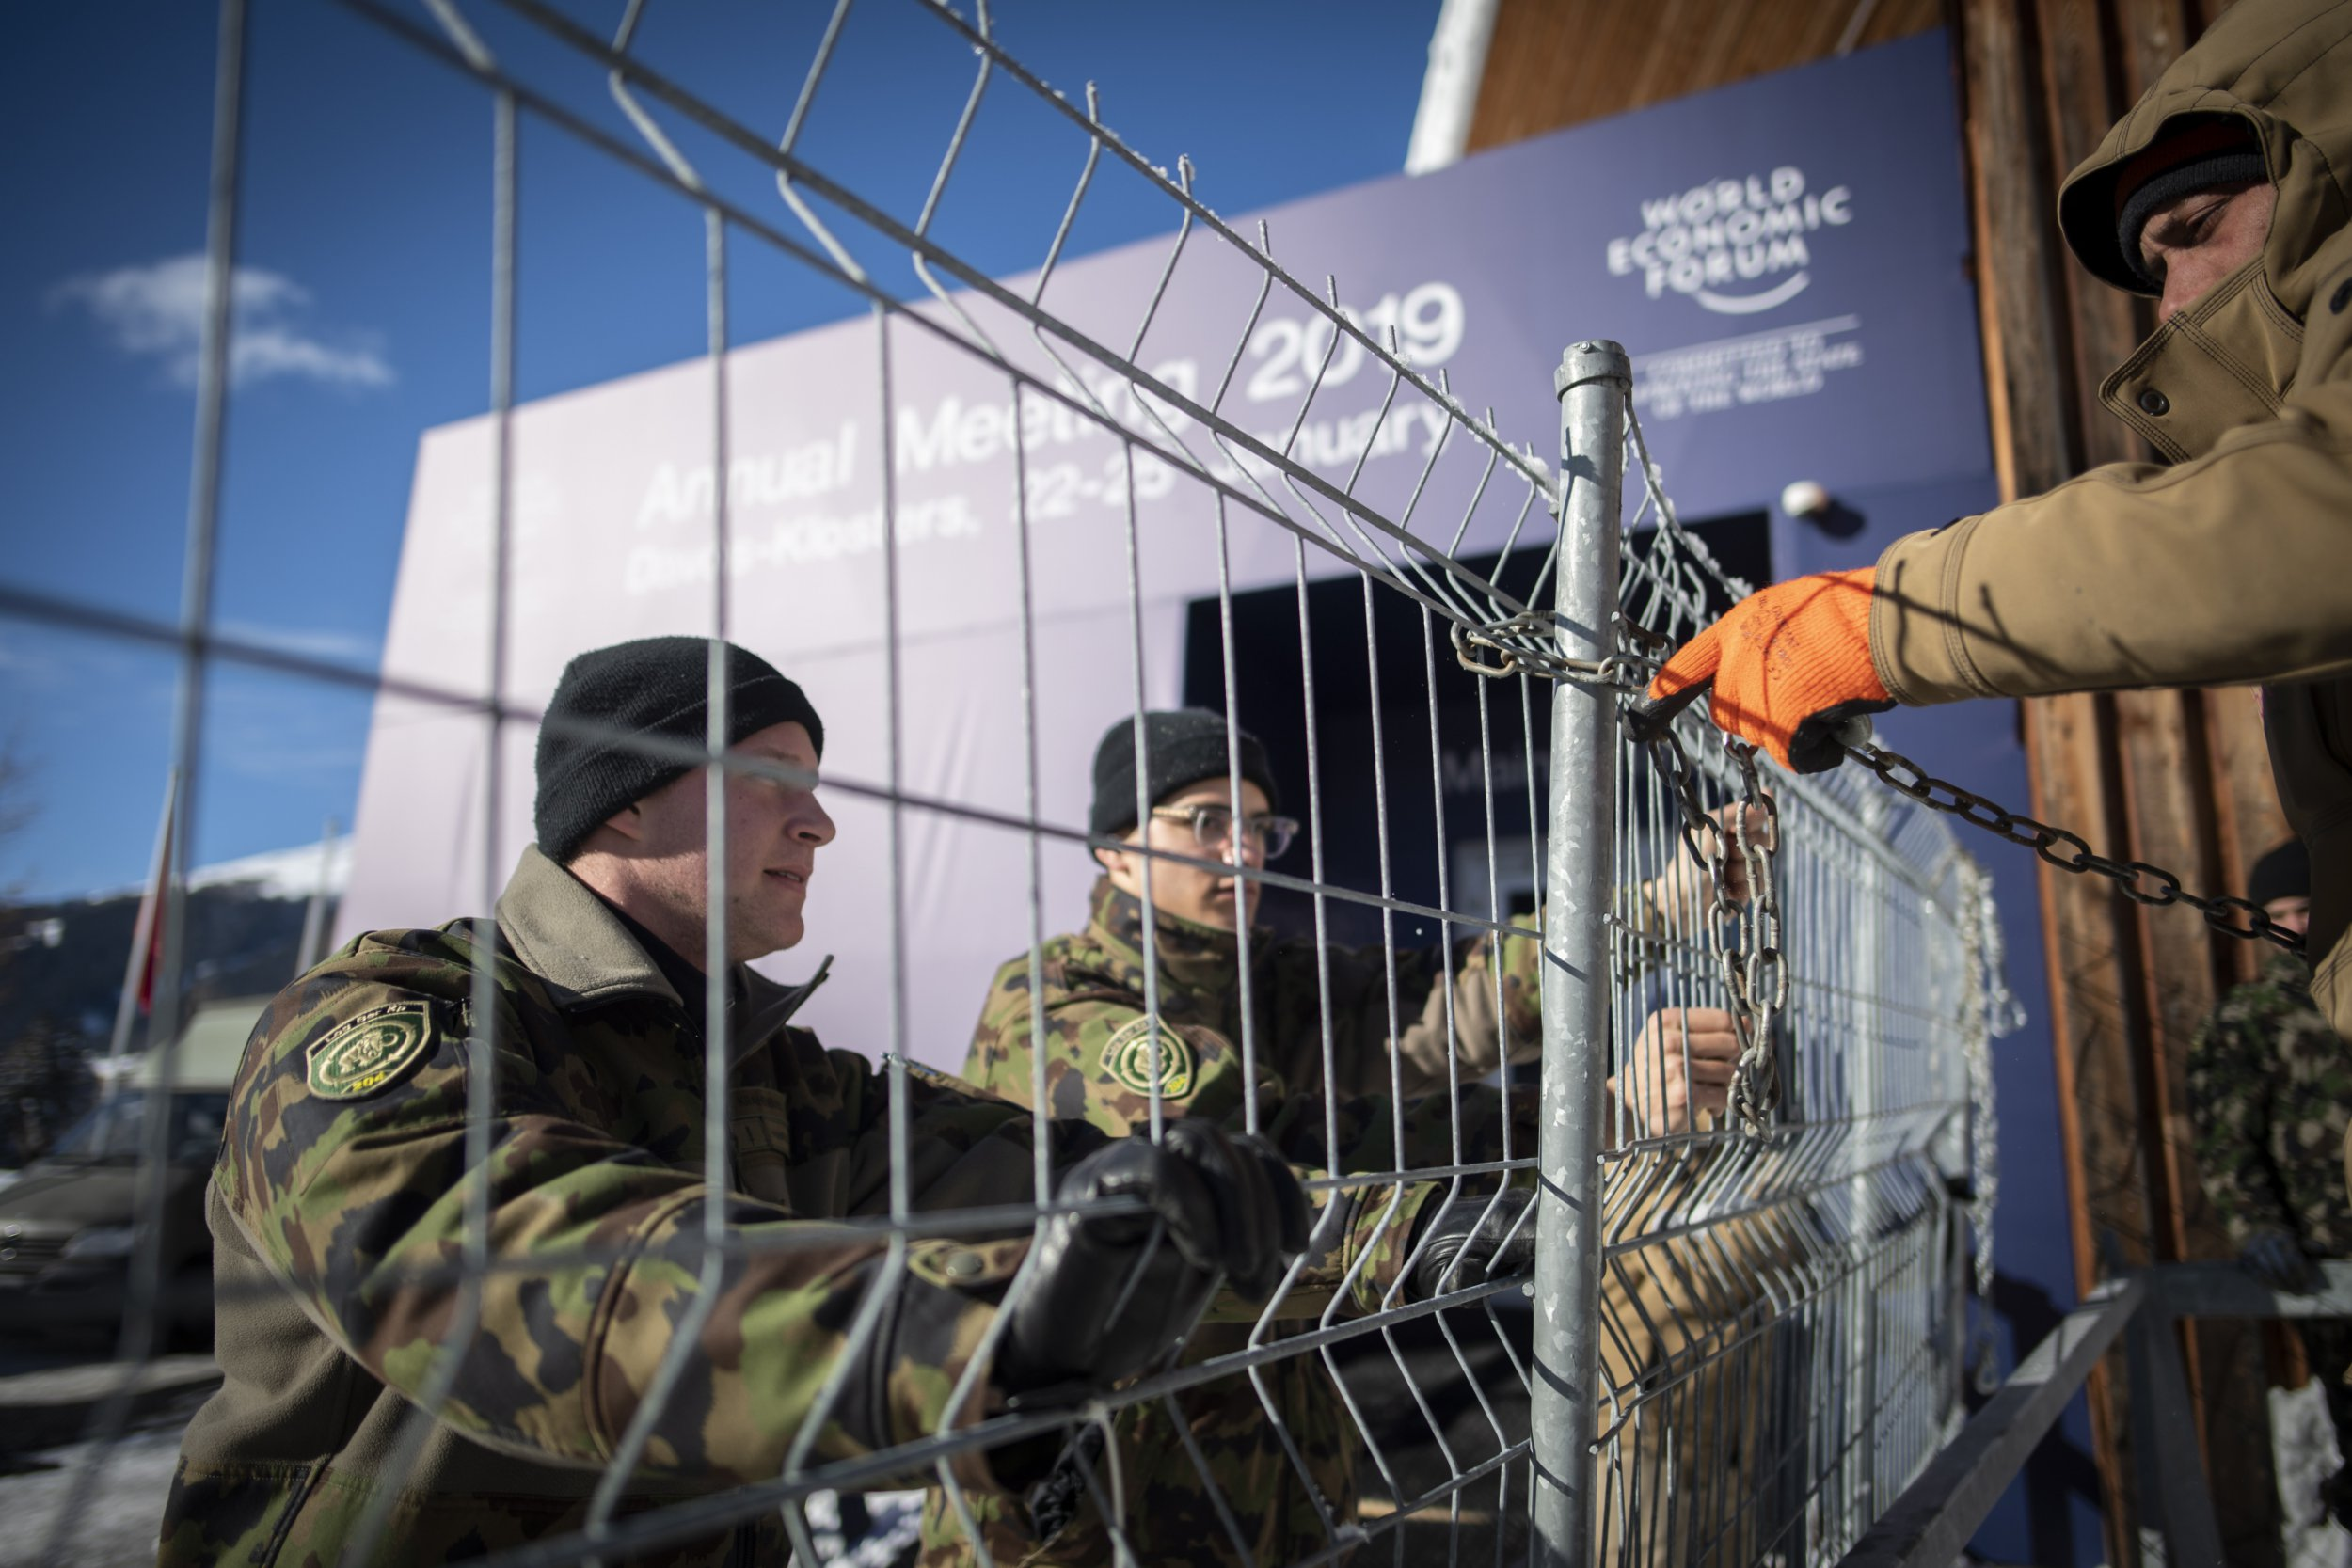 epa07302673 Soldiers set up fences in front of the congress centre, prior the 49th annual meeting of the World Economic Forum WEF 2019 in Davos, Switzerland, 20 January 2019. The meeting brings together enterpreneurs, scientists, chief executive and political leaders in Davos from 22 to 25 January. EPA/GIAN EHRENZELLER